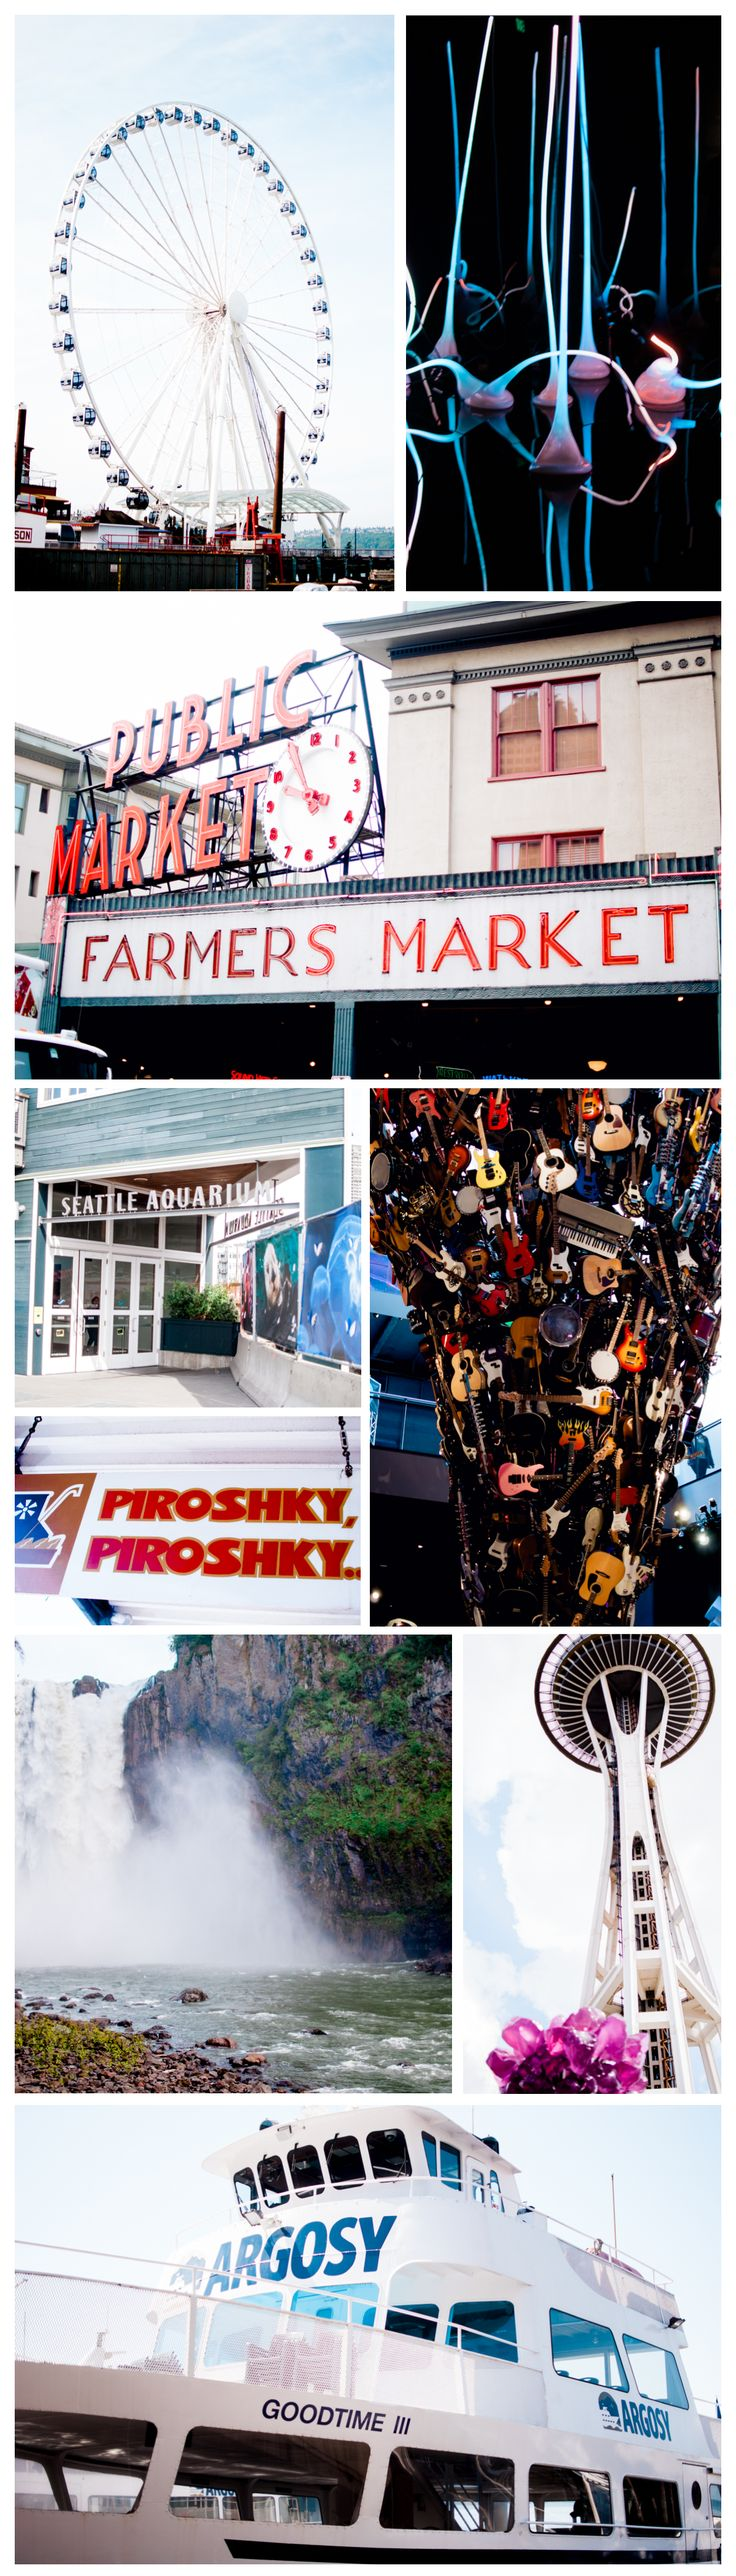 Seattleu0027s Pike Place Market See more